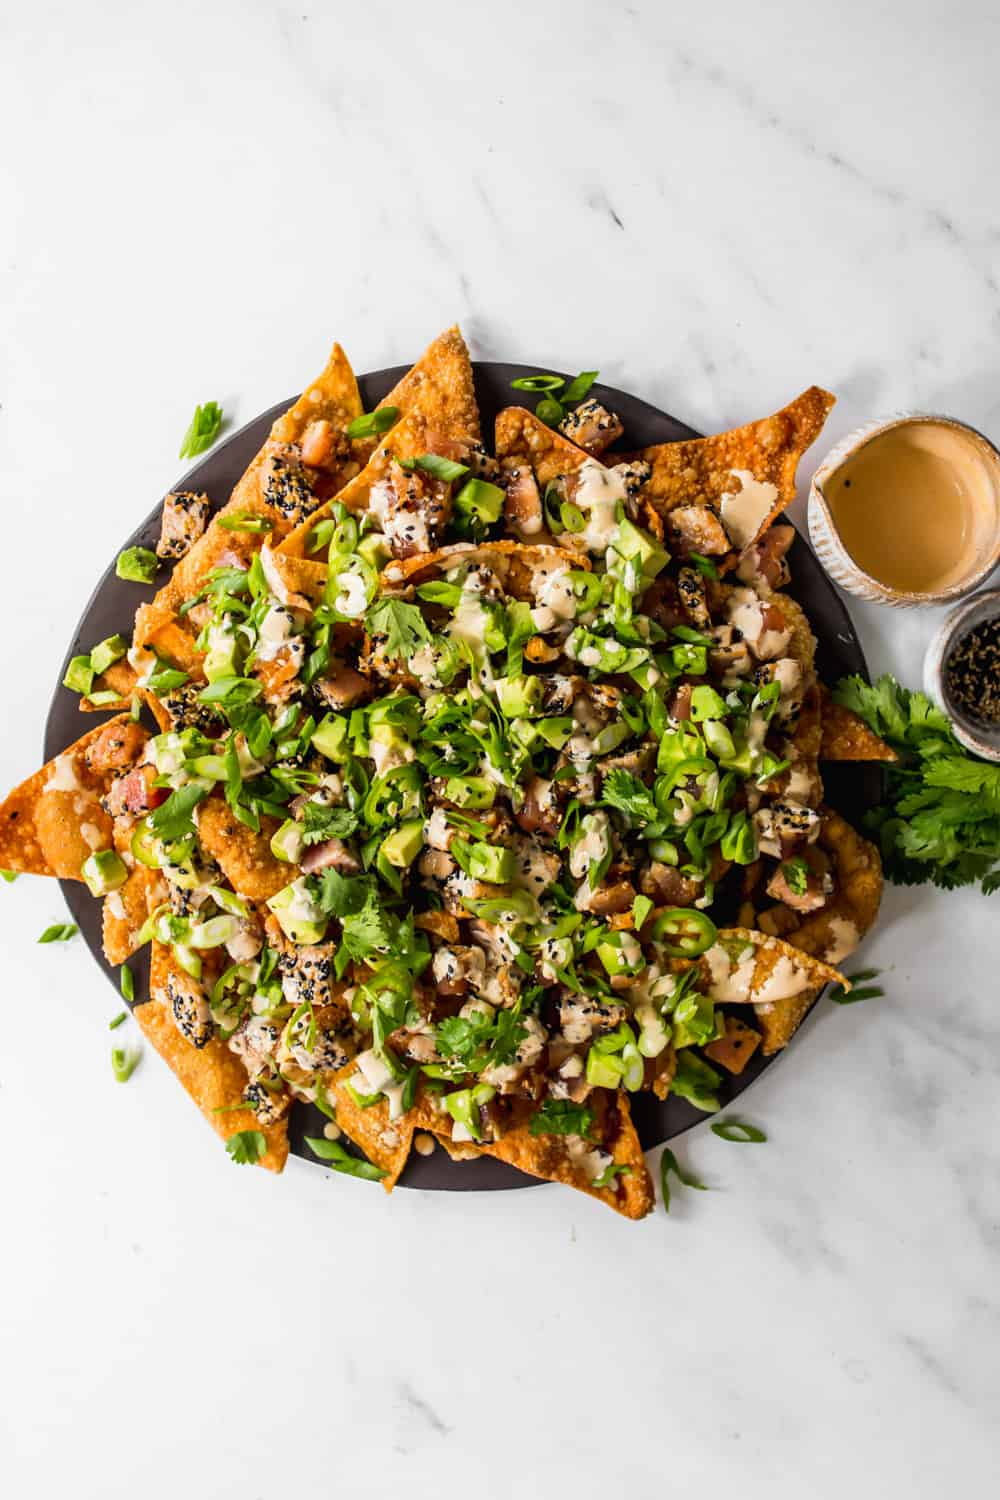 Overhead view of a plate of wonton nachos covered in green onion, cilantro, avocado, spicy mayo, and tuna.